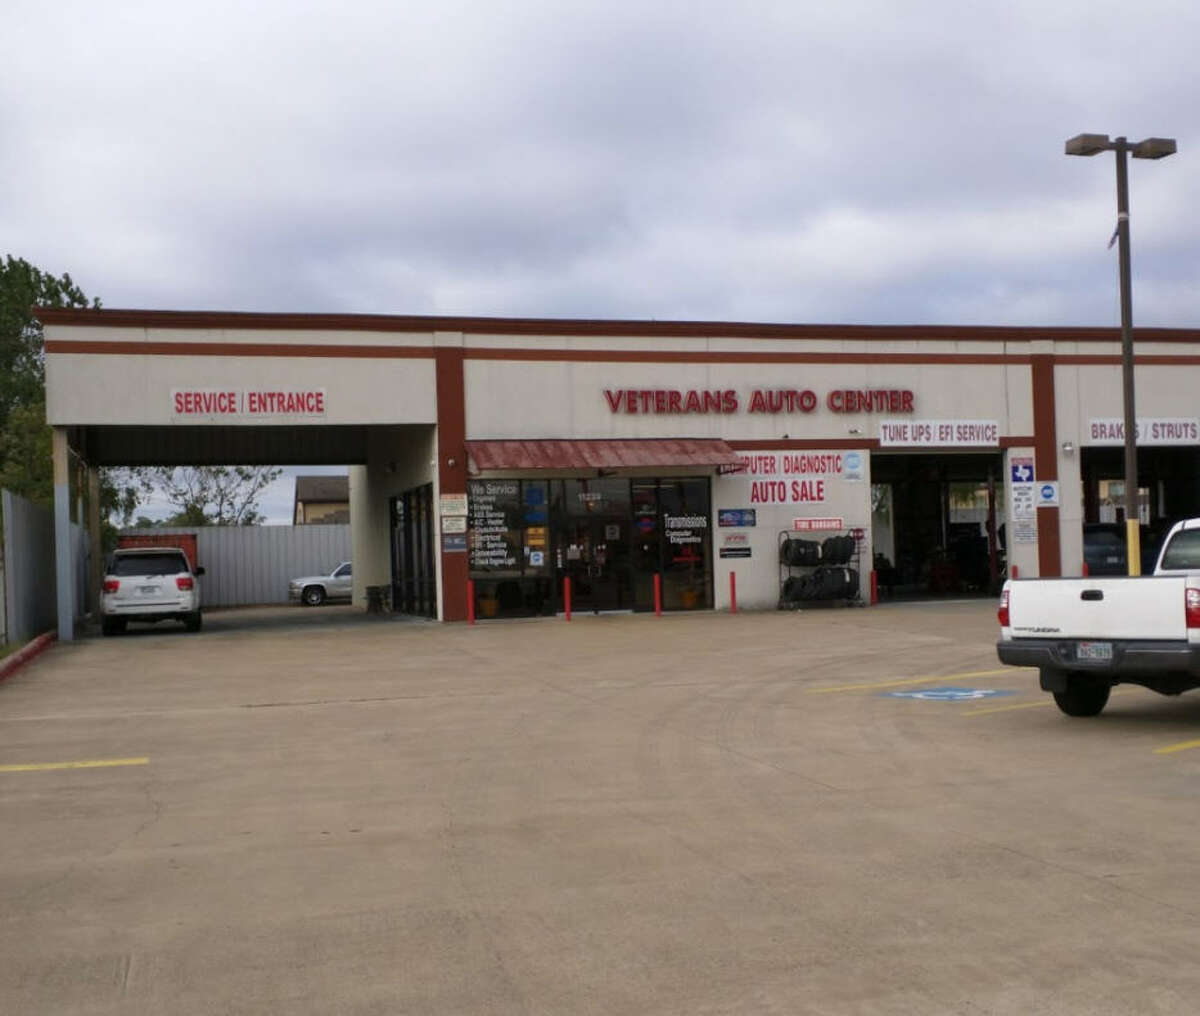 Veterans Auto Repair  Yelp rating: 5 stars  Location: 11239 Veterans Memorial Drive  Neighborhood: North Harris County